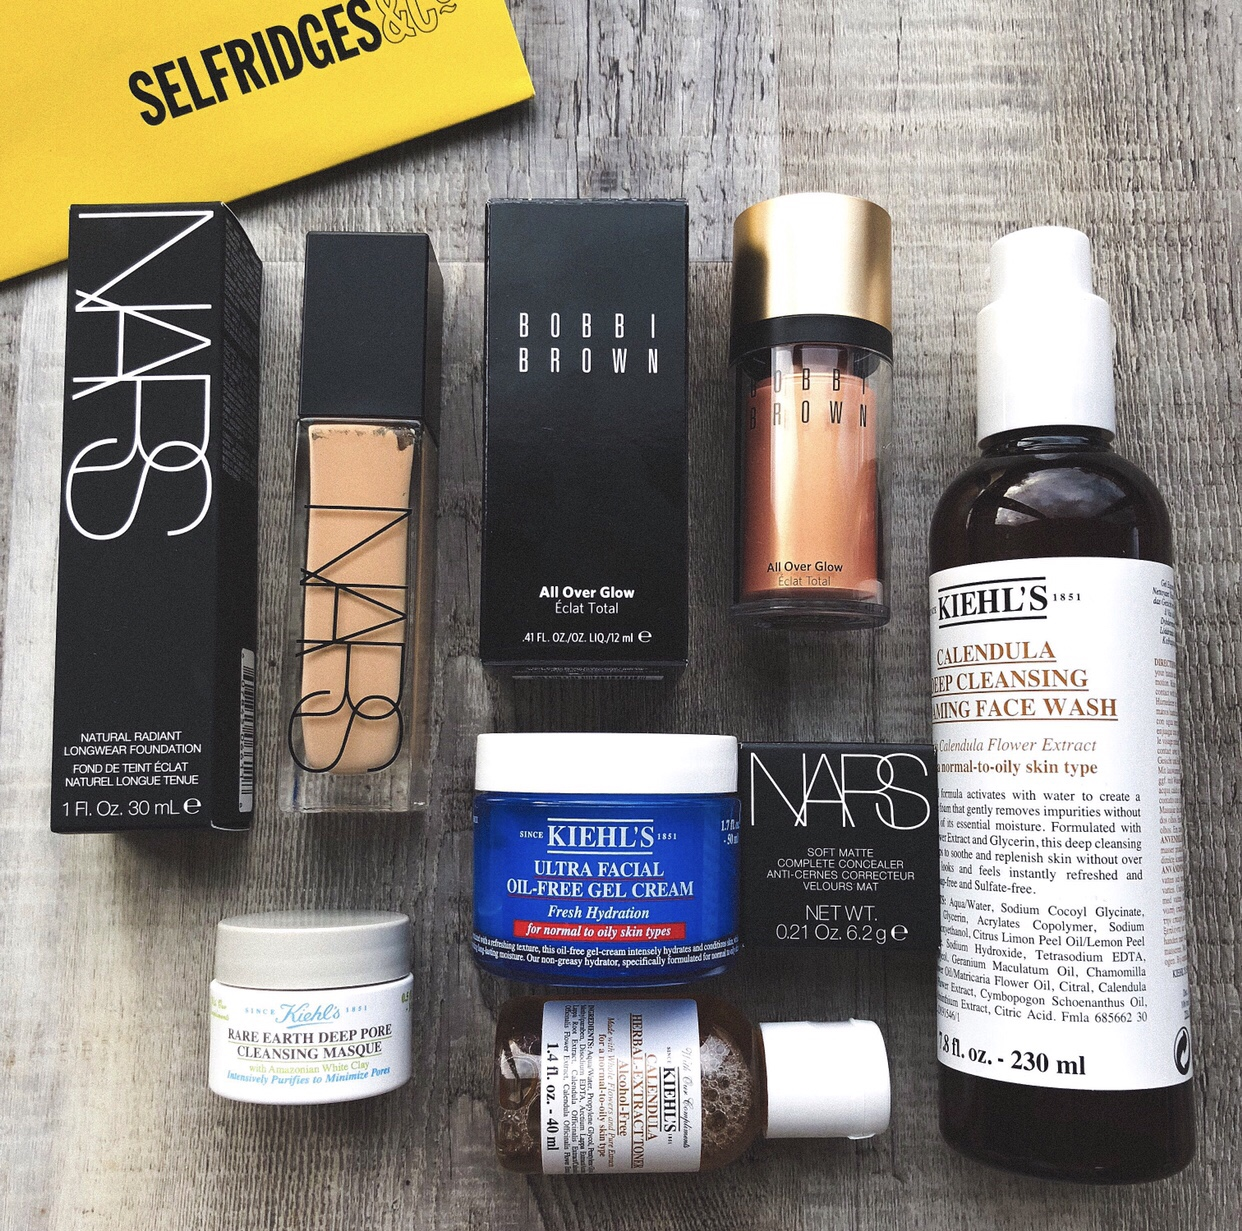 Skin Care: why do we fall for the expensive brands?